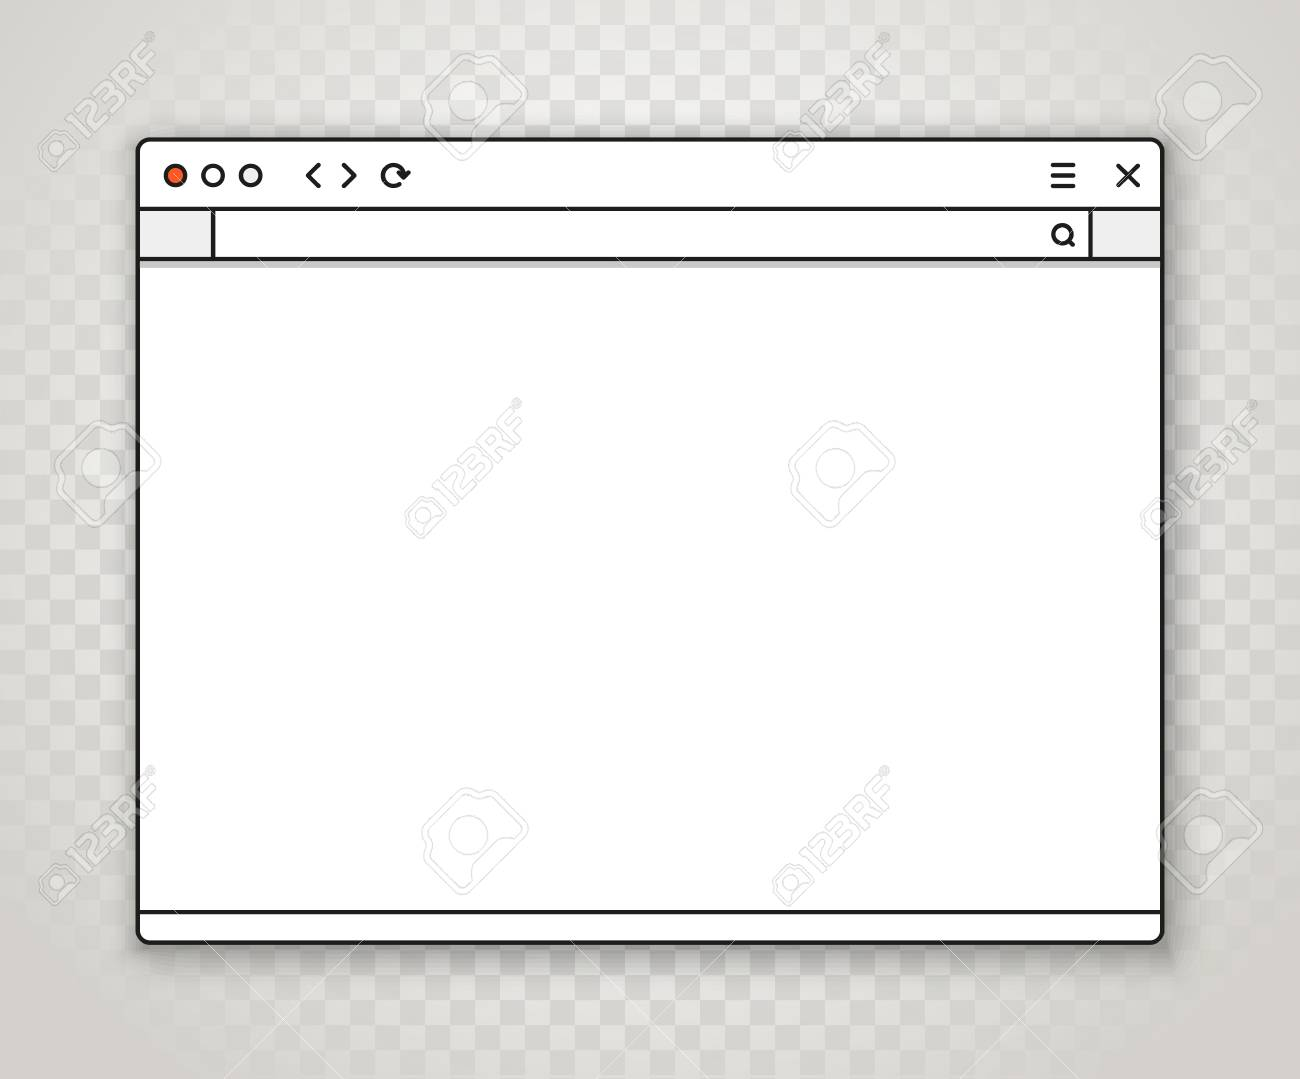 opened browser window template on transparent background. past